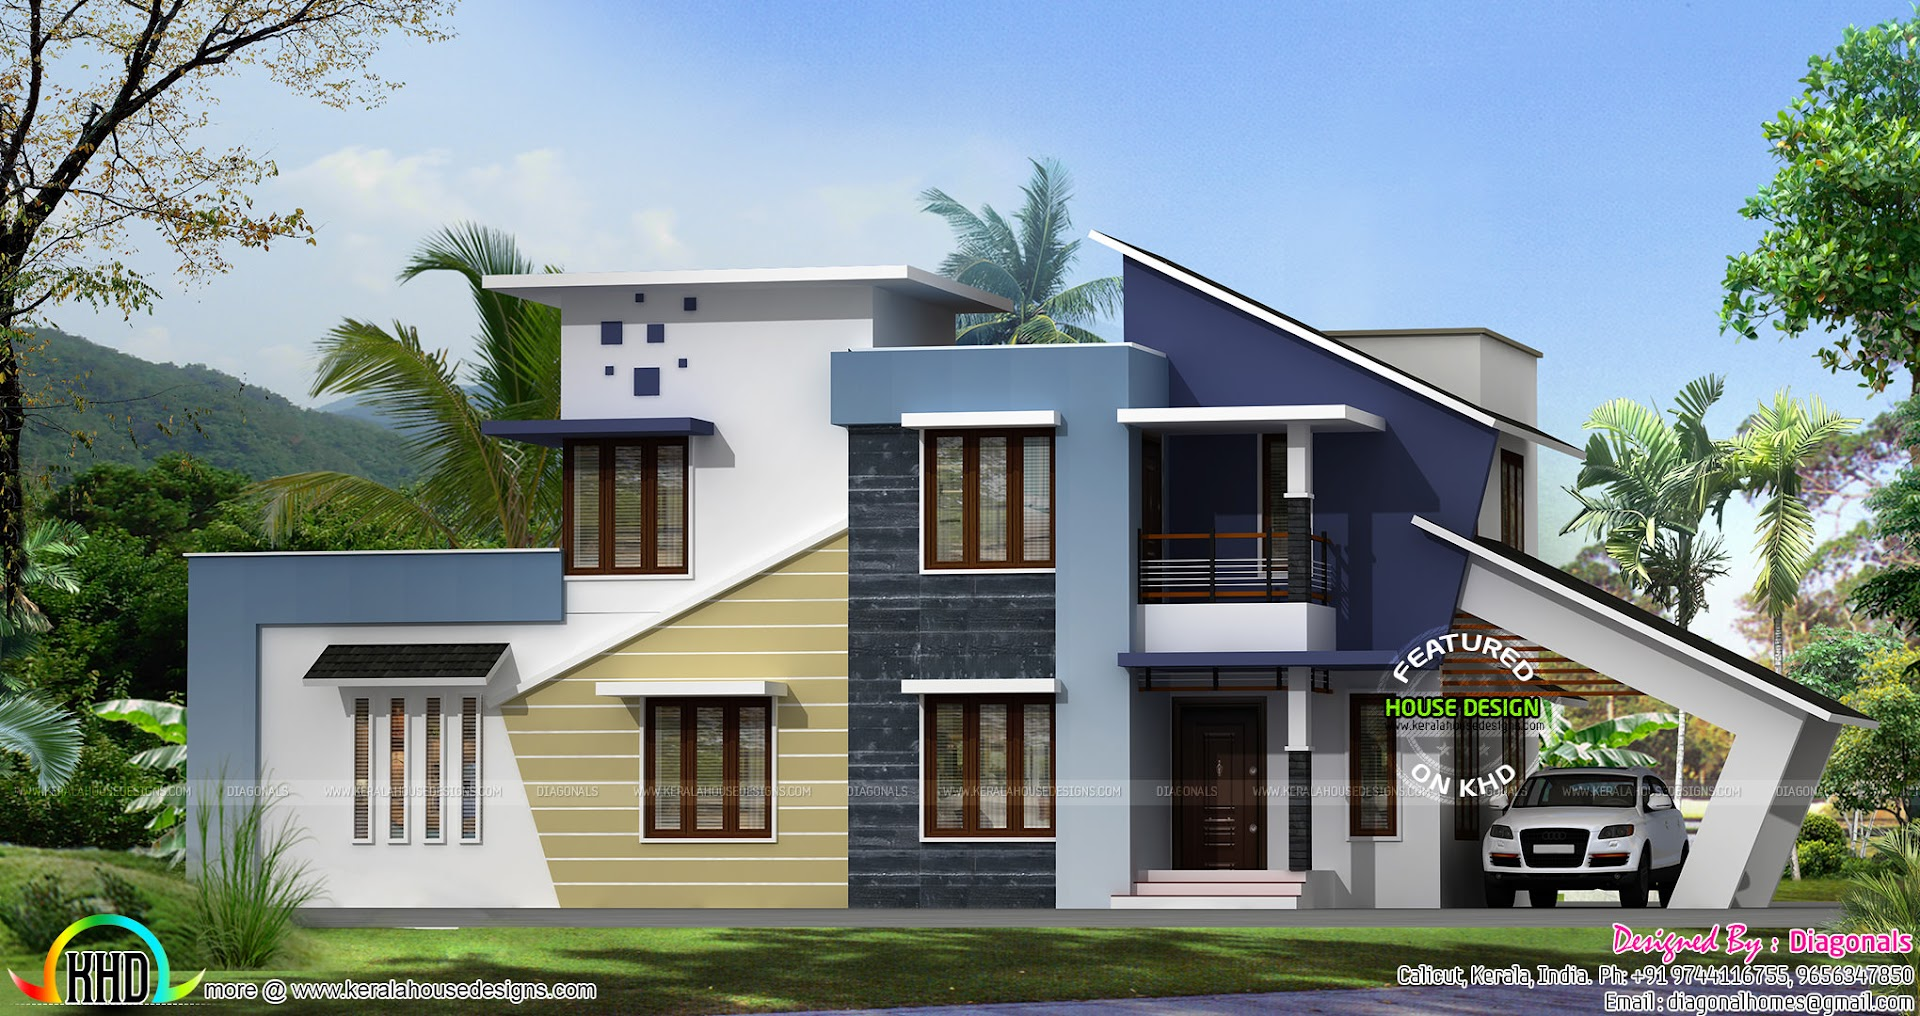 new gen home design - 17+ Small House Design In Kerala Style PNG